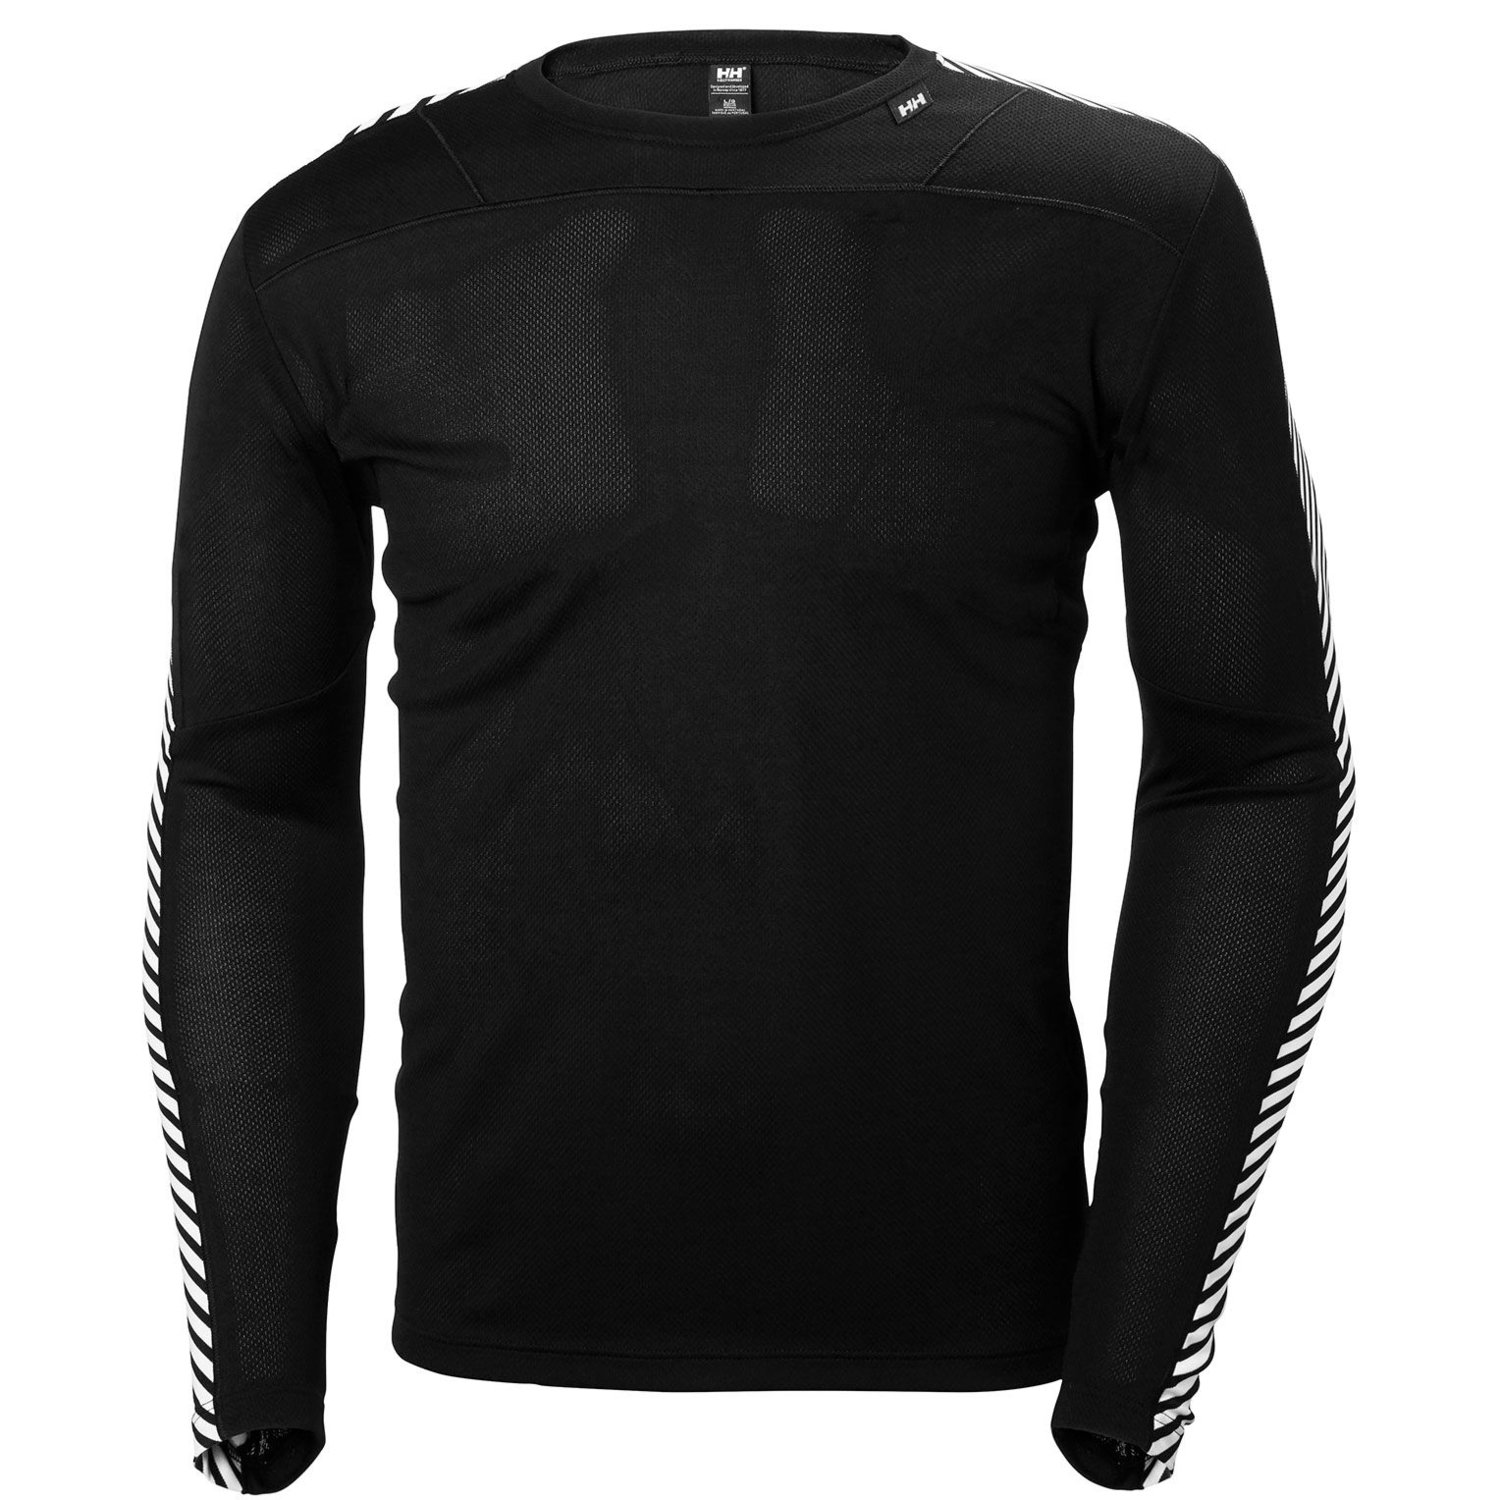 27dda6f2 Helly Hansen Men's Thermal HH Lifa Crew